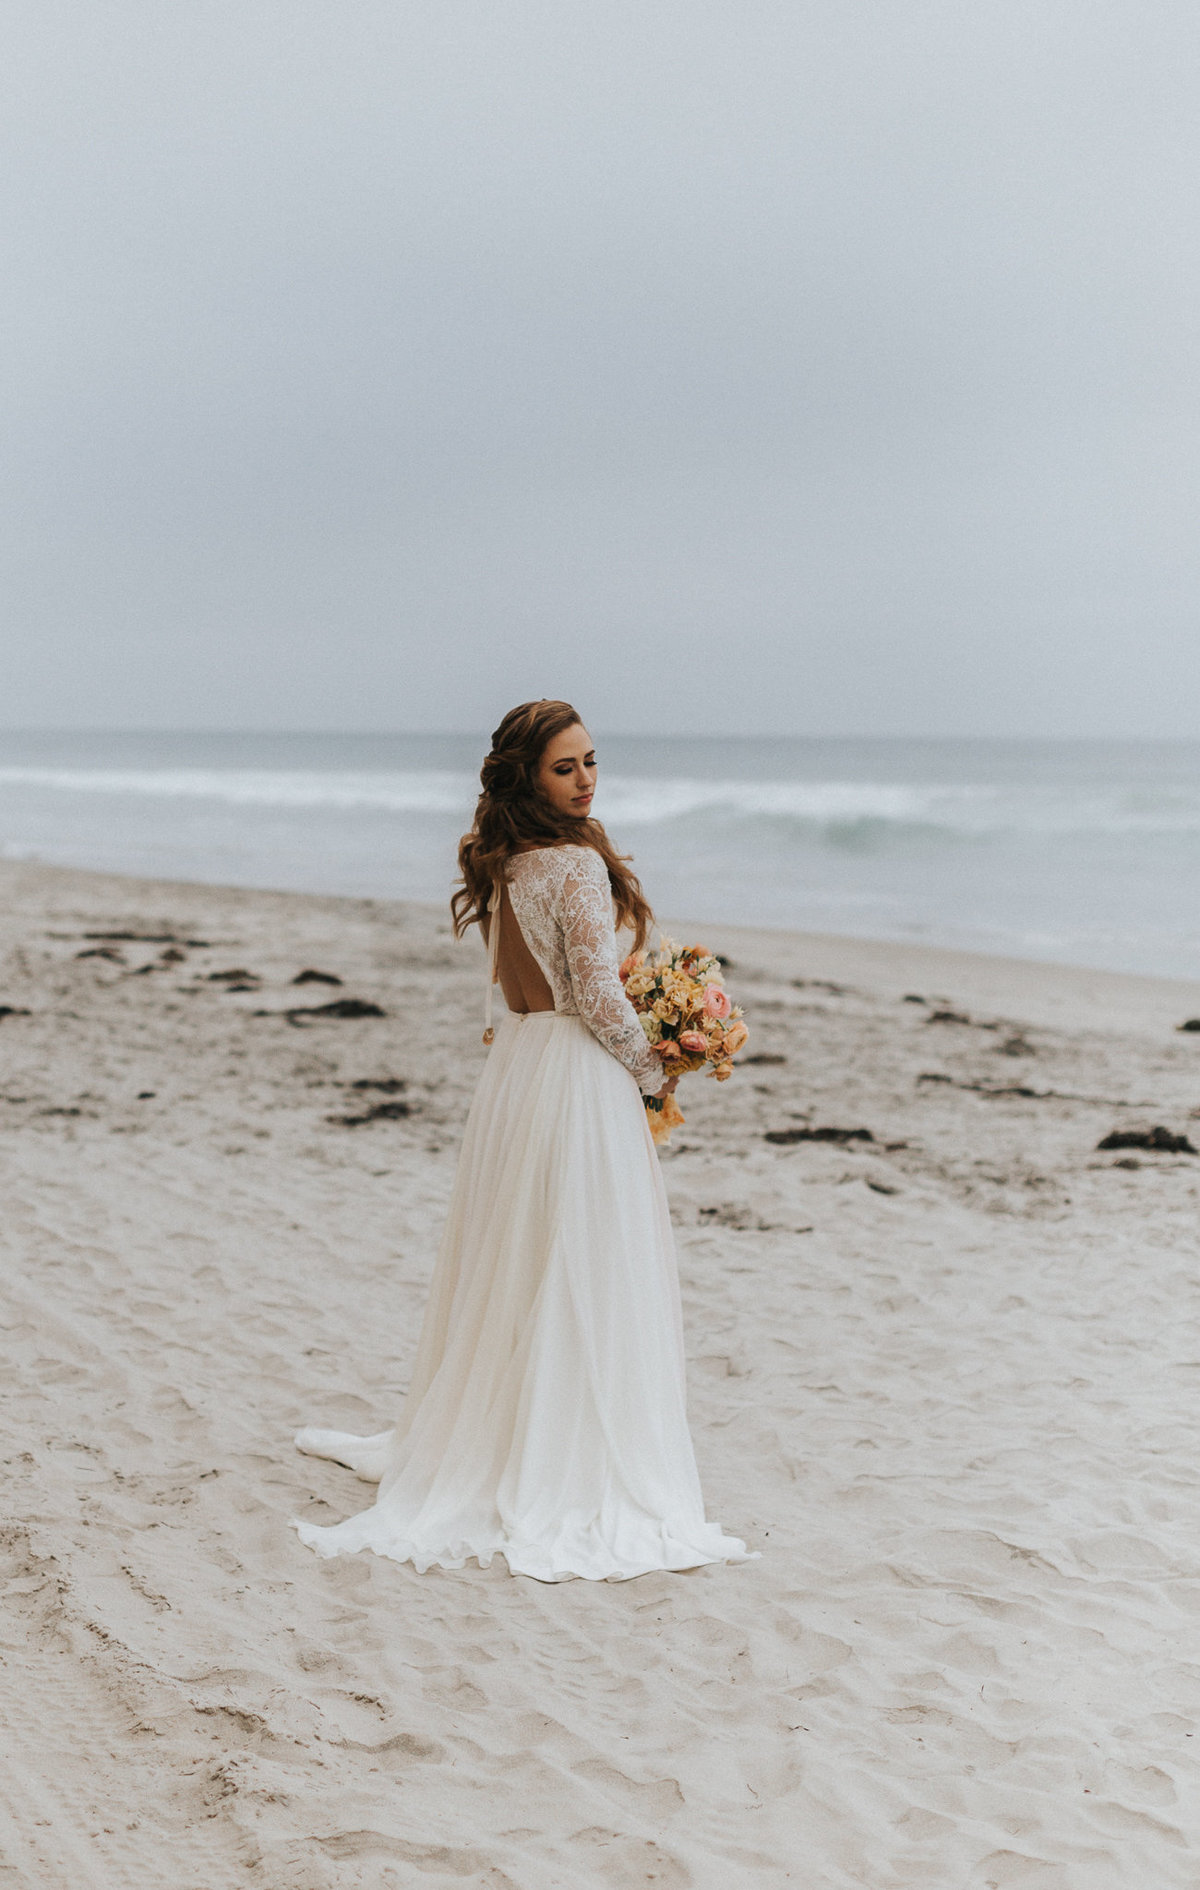 Bridal portrait during her beach elopement in San Diego, California.